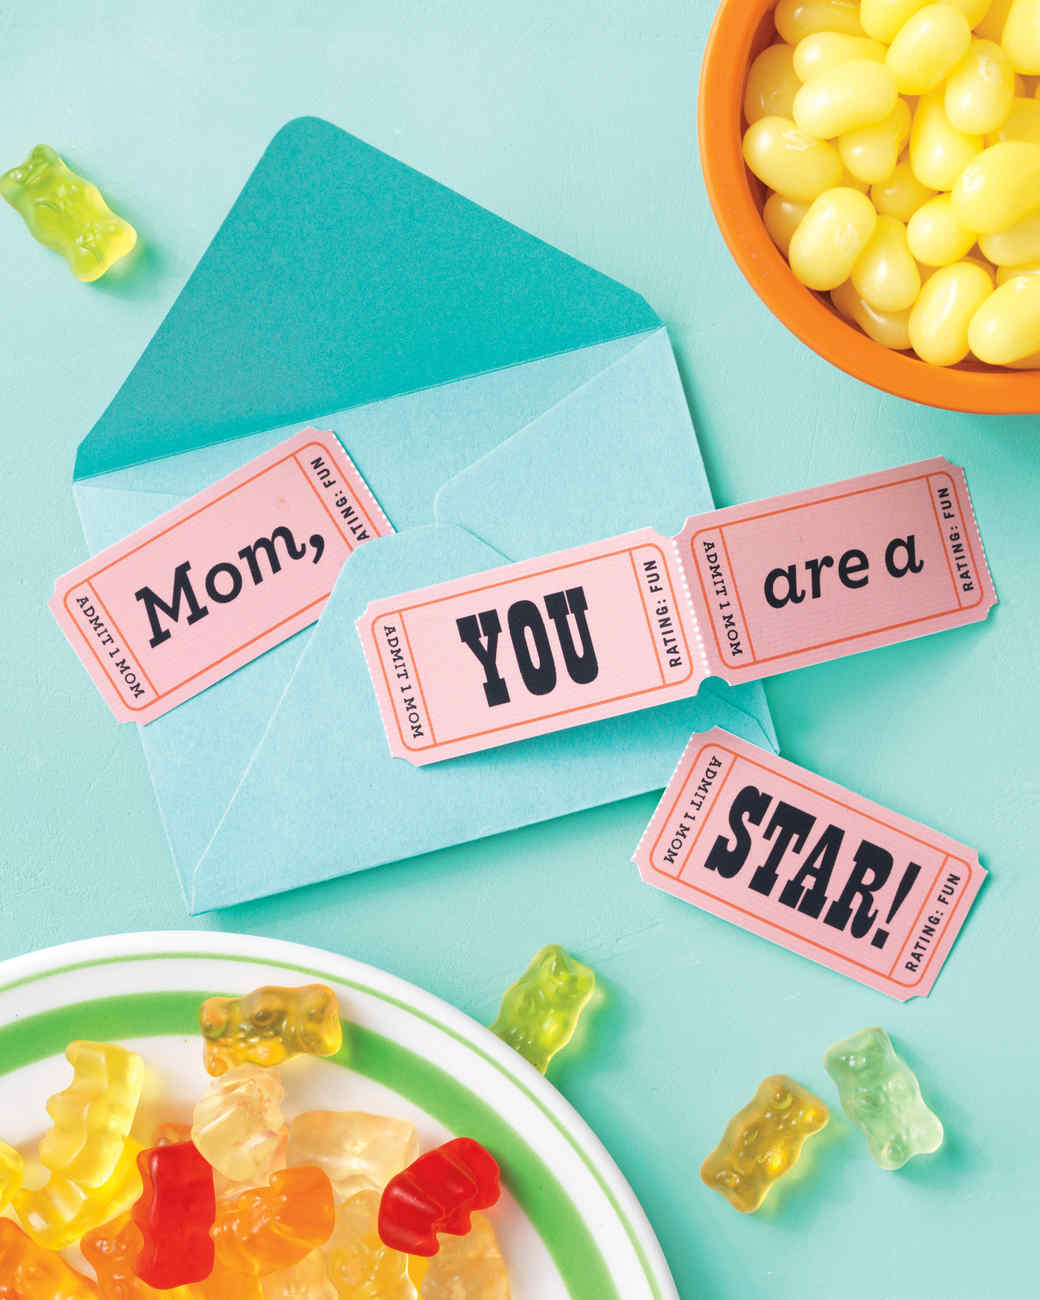 Awesome Diy Mother's Day Gifts 15 Last Minute Mother S Day Gift Ideas To Surprise Her Martha